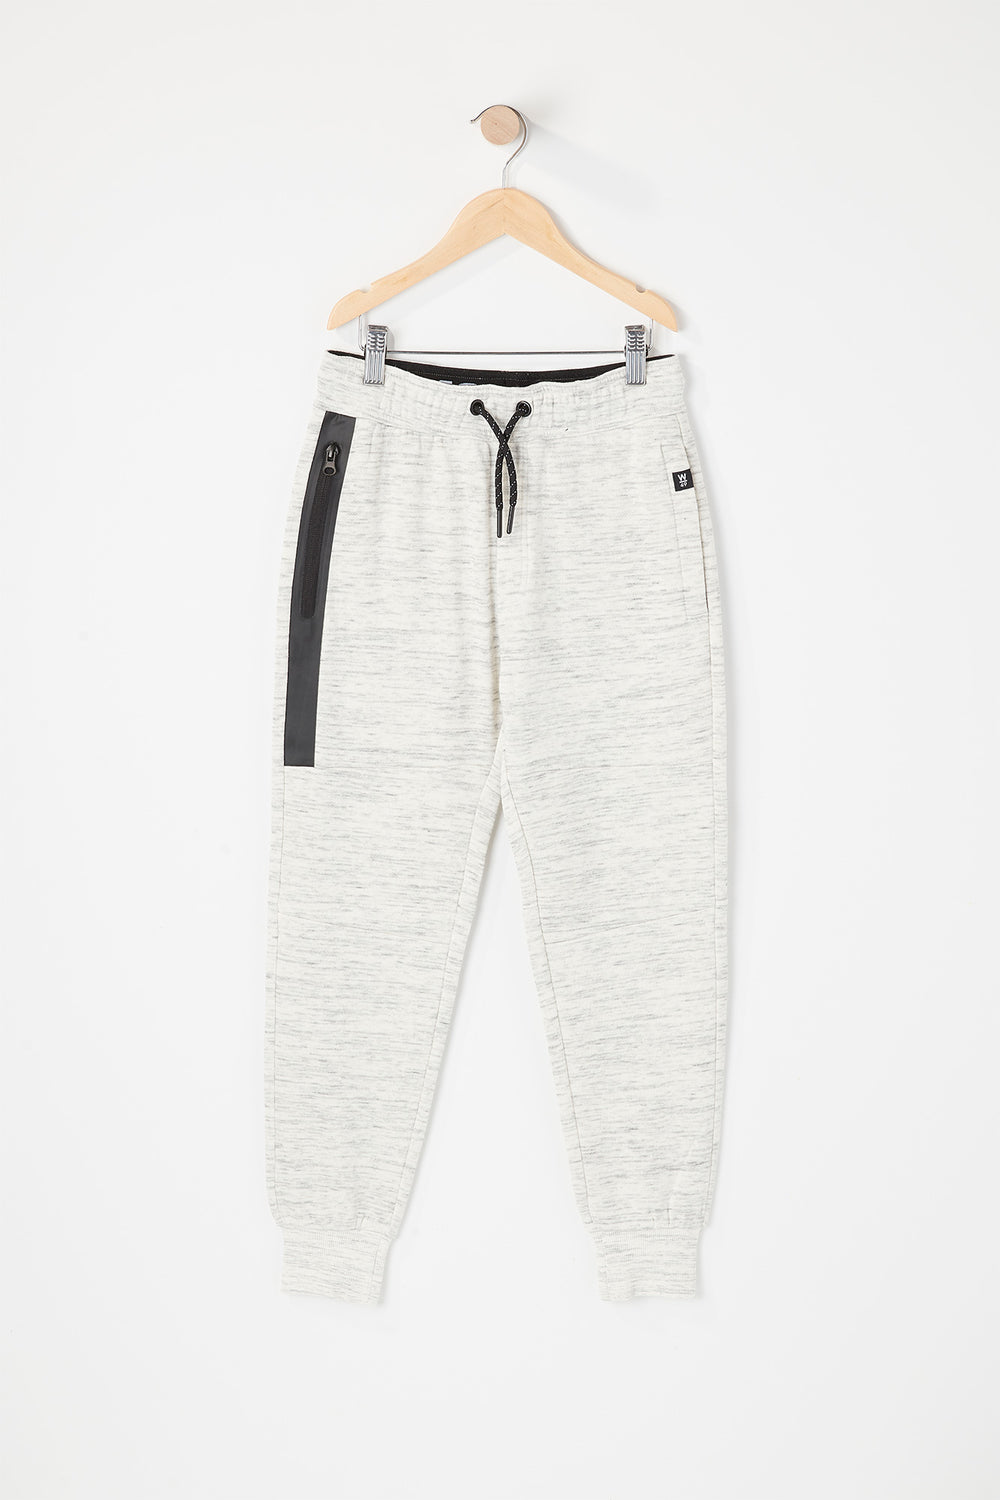 West49 Youth Zip Pocket Jogger Oatmeal